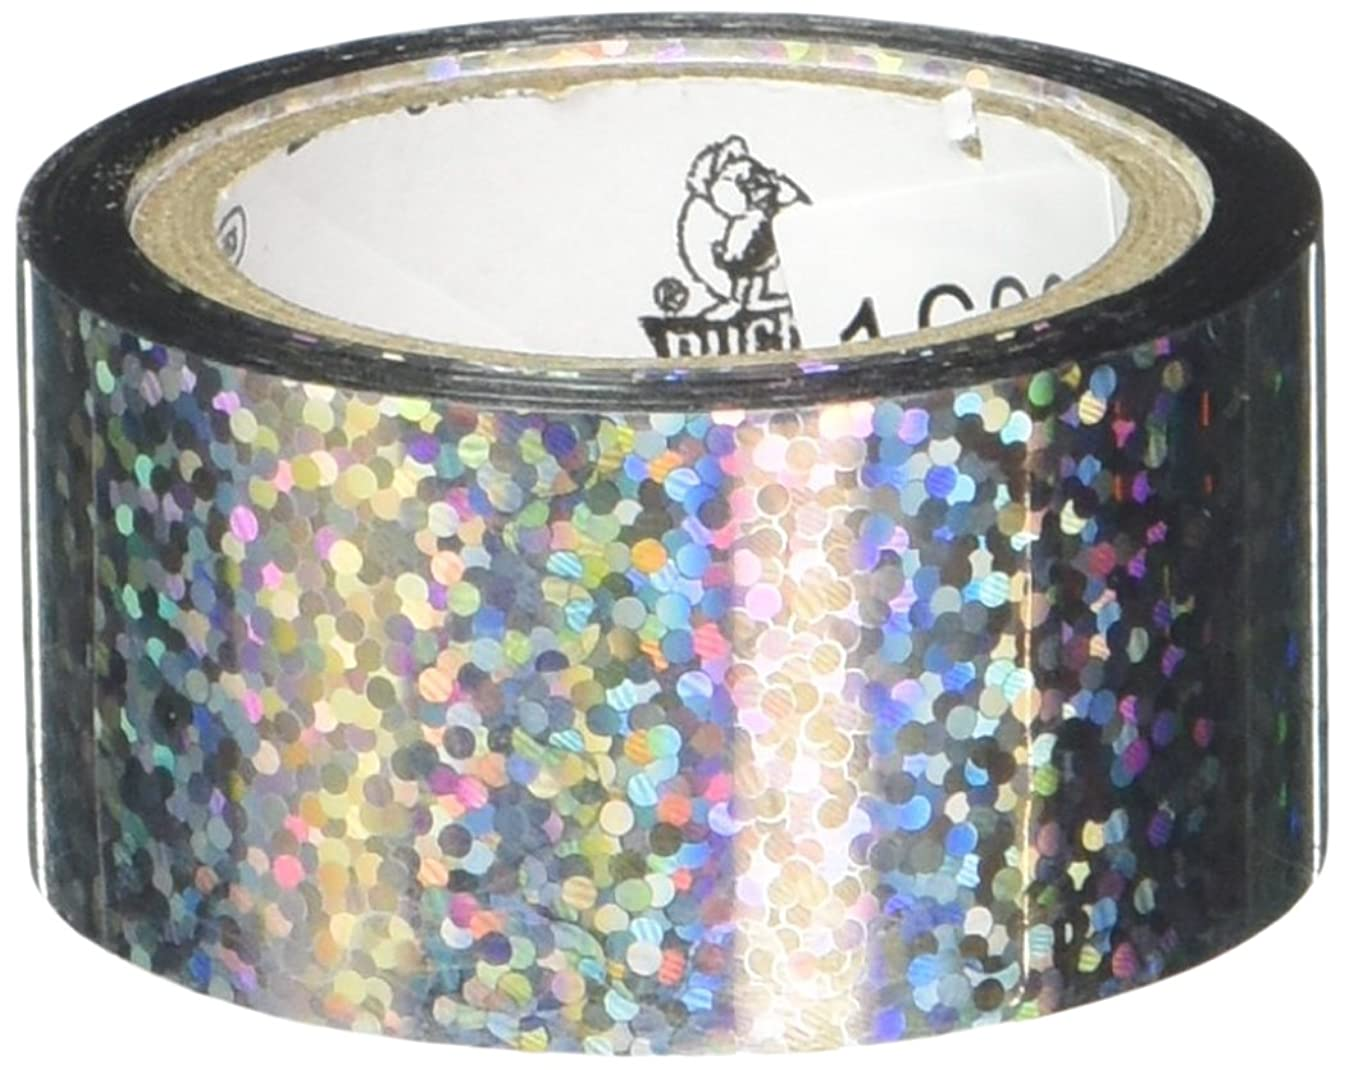 ShurTech PRISMTP-2661 Prism Tape, 0.75 by 180-Inch, Lots of Dots